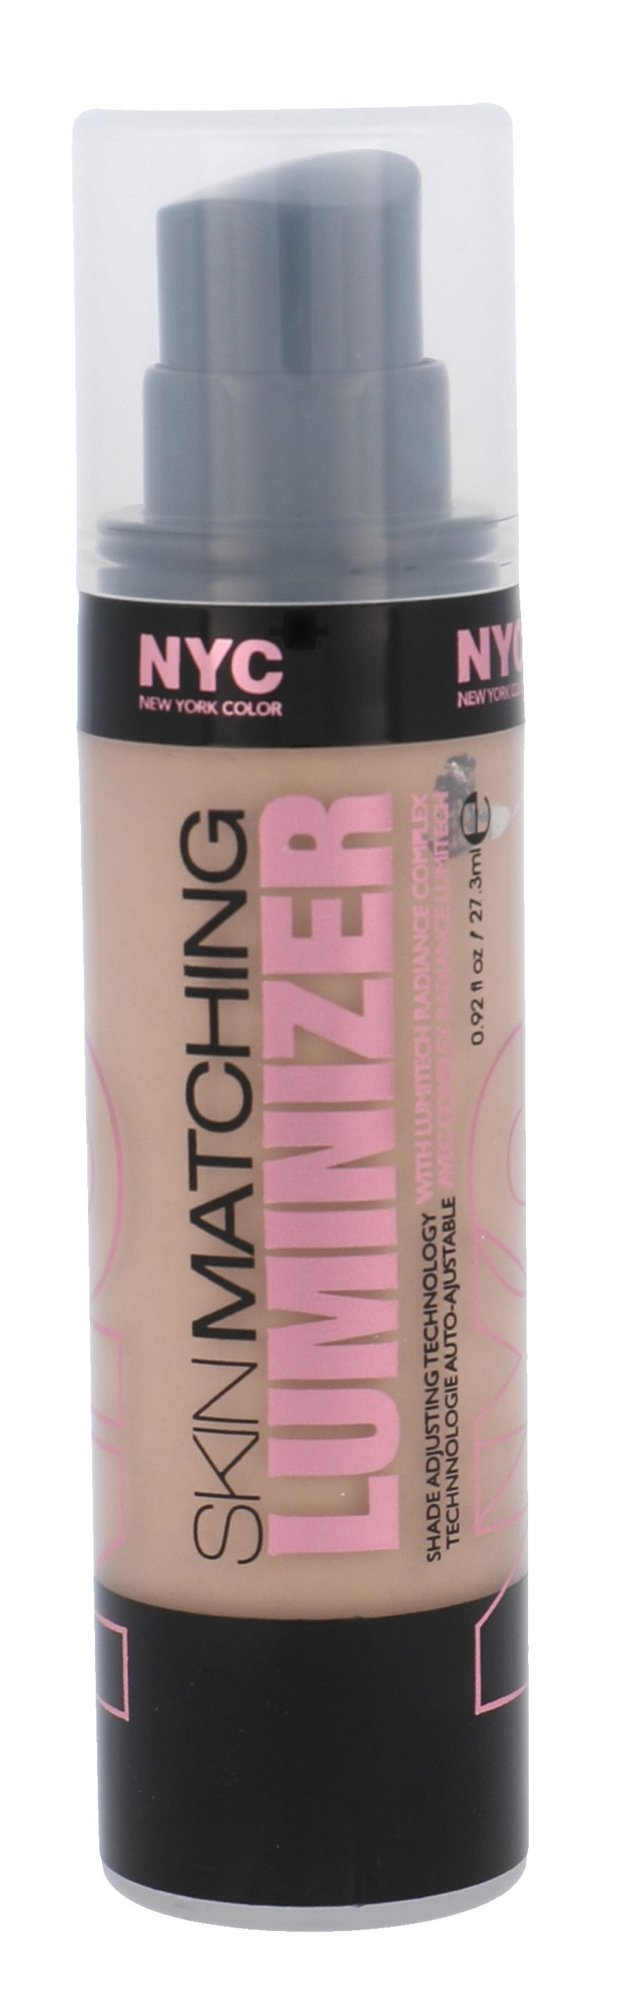 NYC New York Color Skin Matching Cosmetic 27,3ml 320 Medium To Deep Luminizer